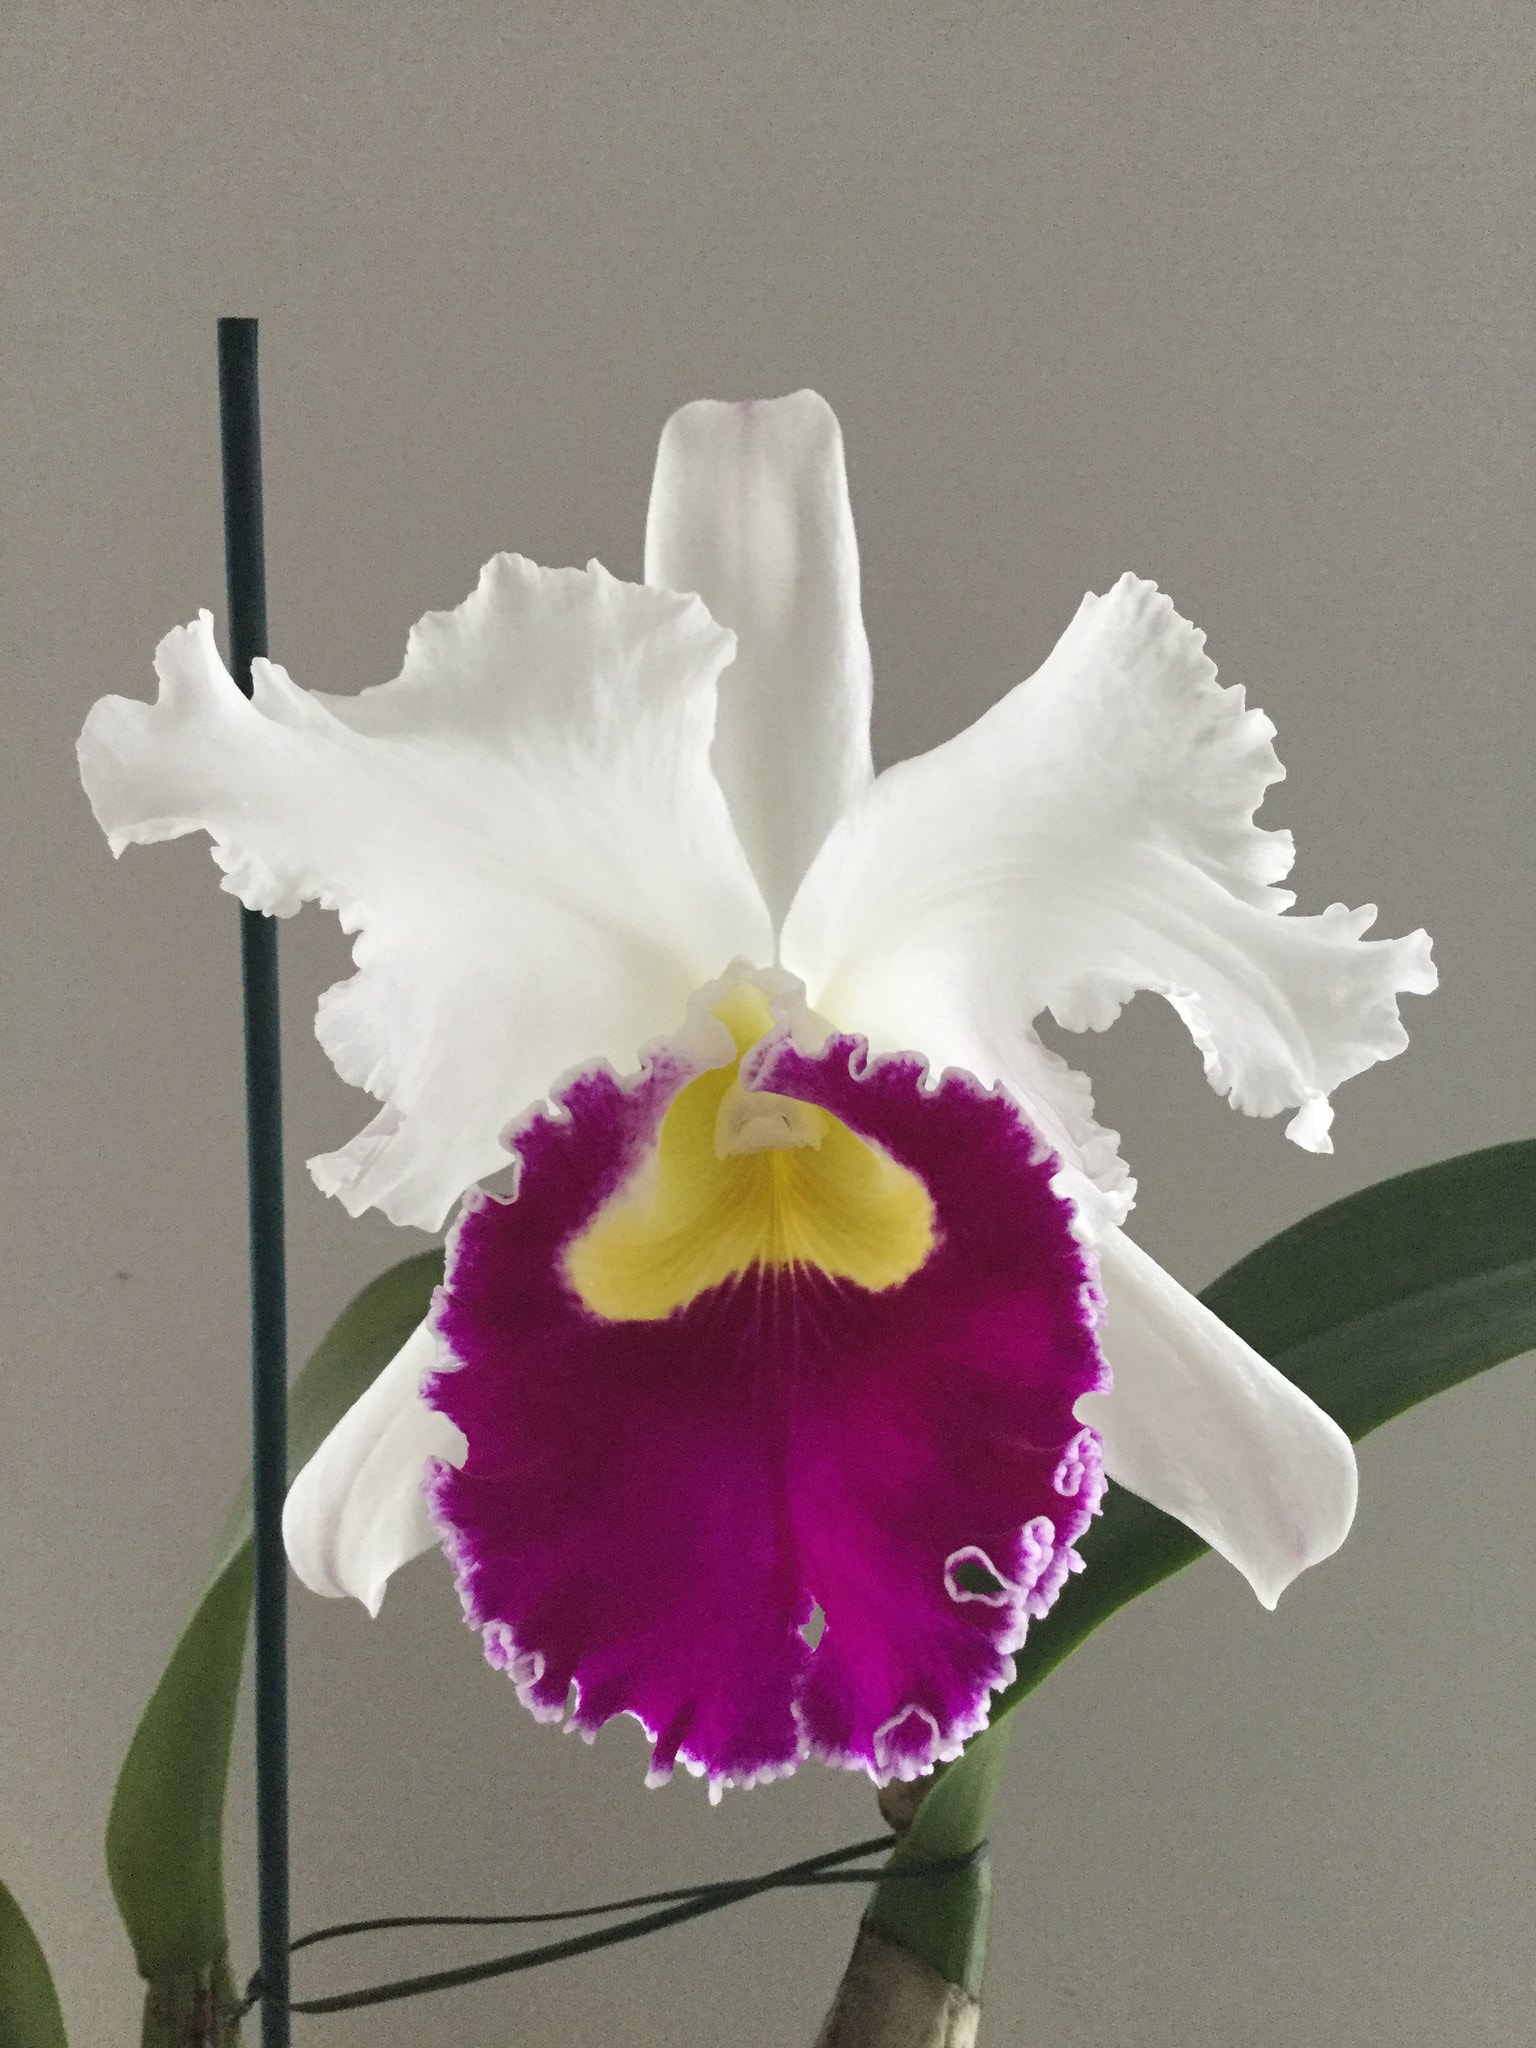 Cattleya (Lc) Orglade's Grand 'Orchis' AM/AOS 38600393735_dd12818a21_k